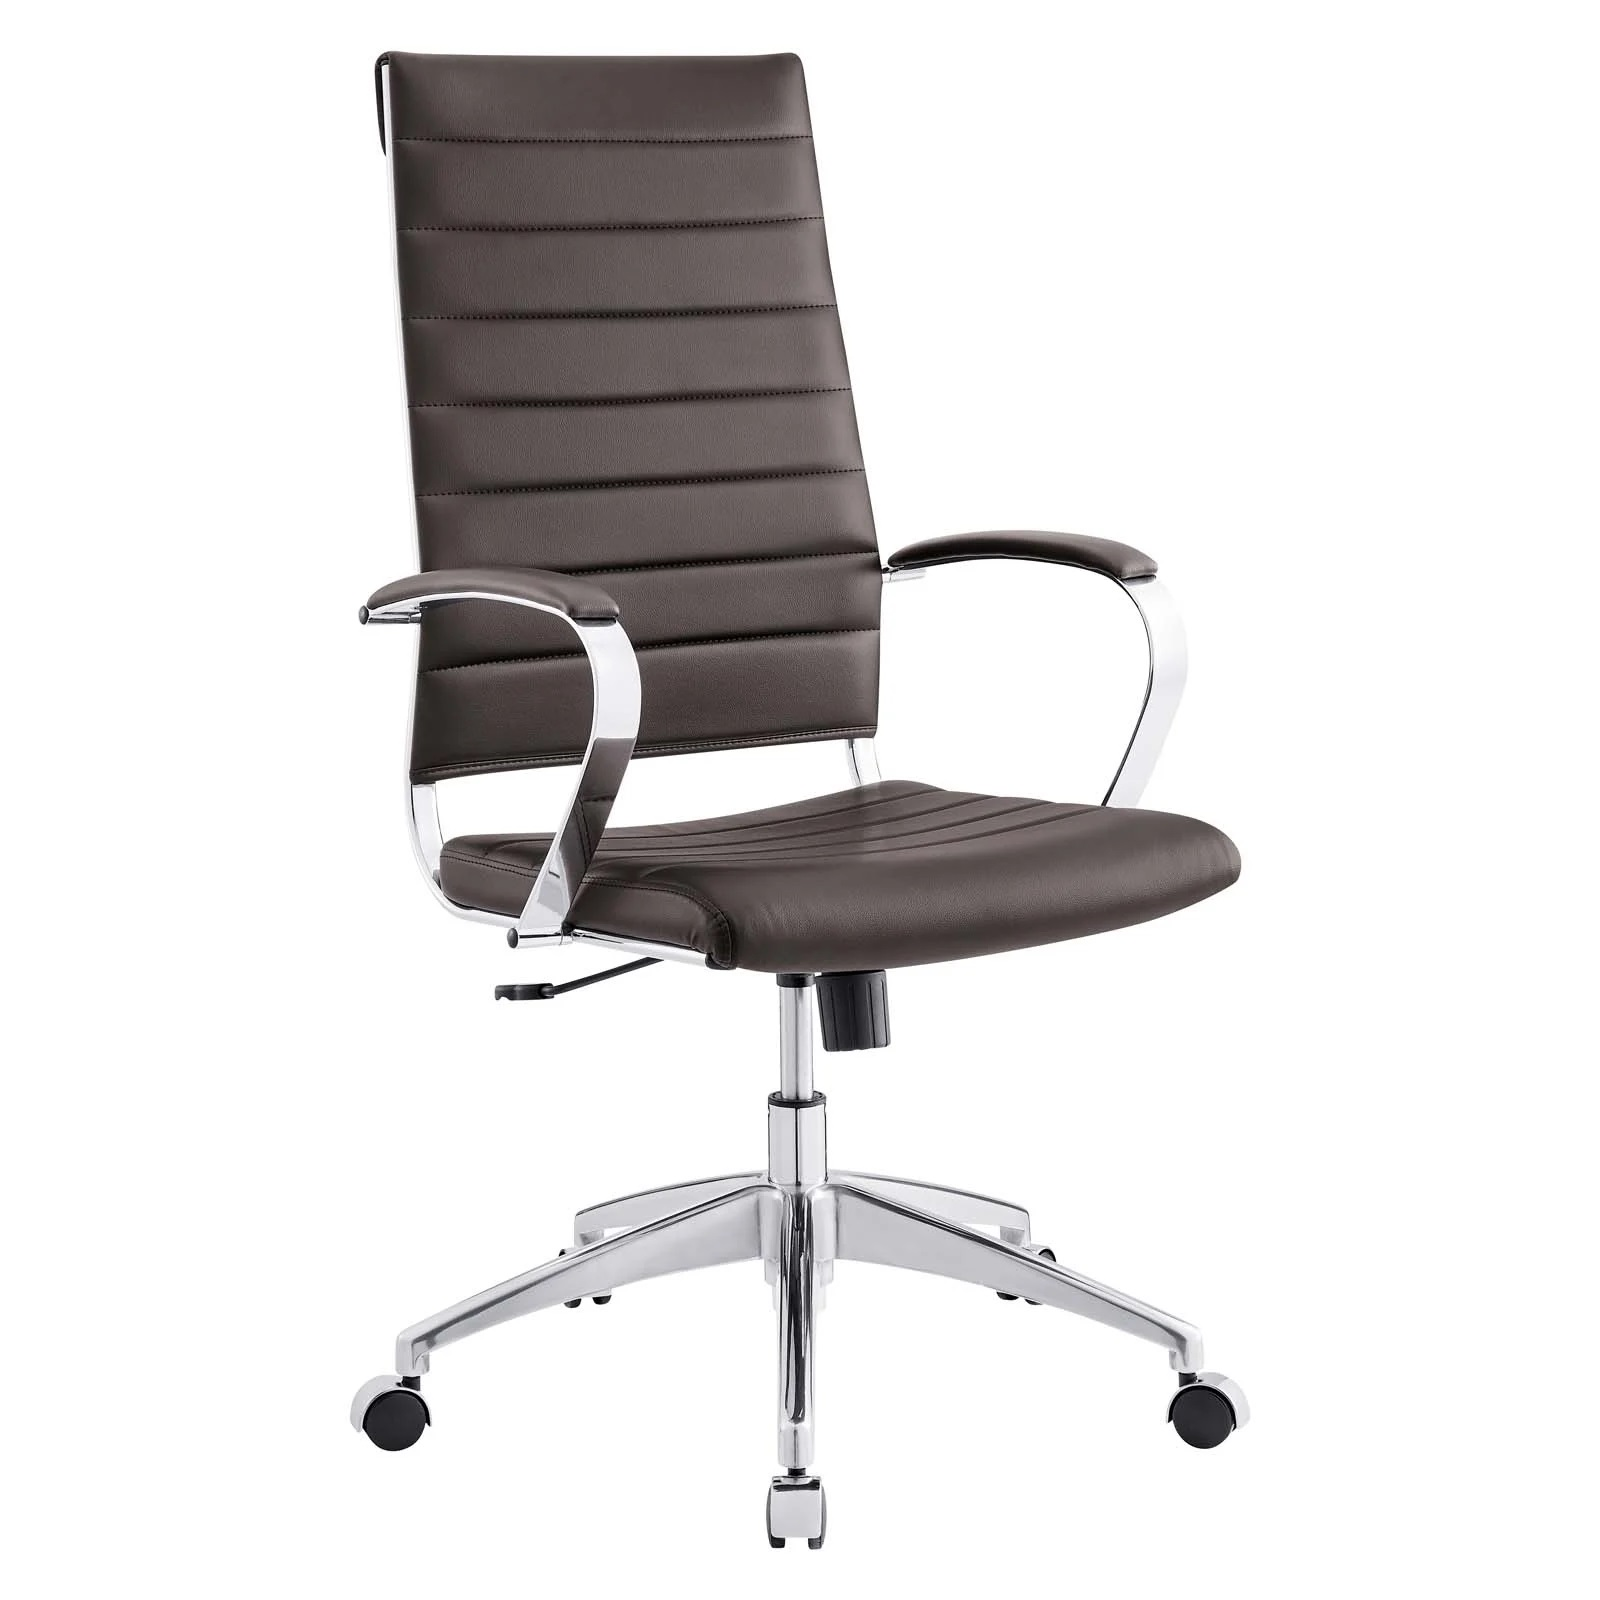 Highback Office Chair in Brown